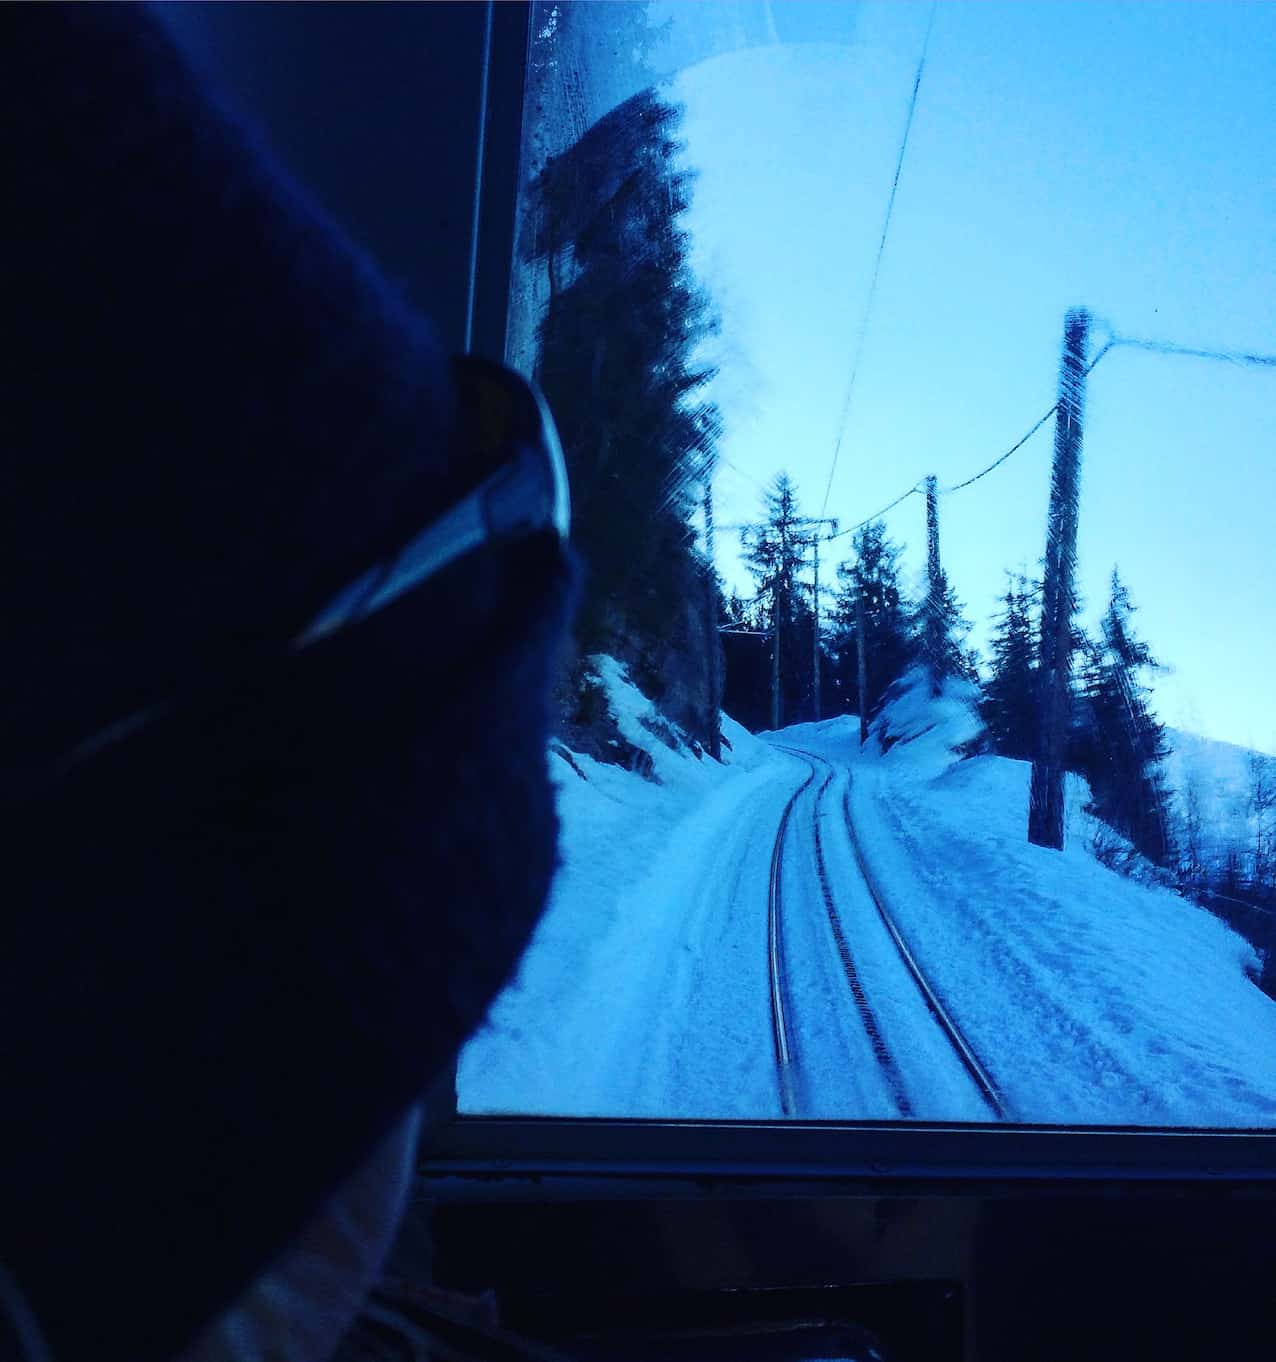 Tramway du Mont Blanc Chamonix for non skiers